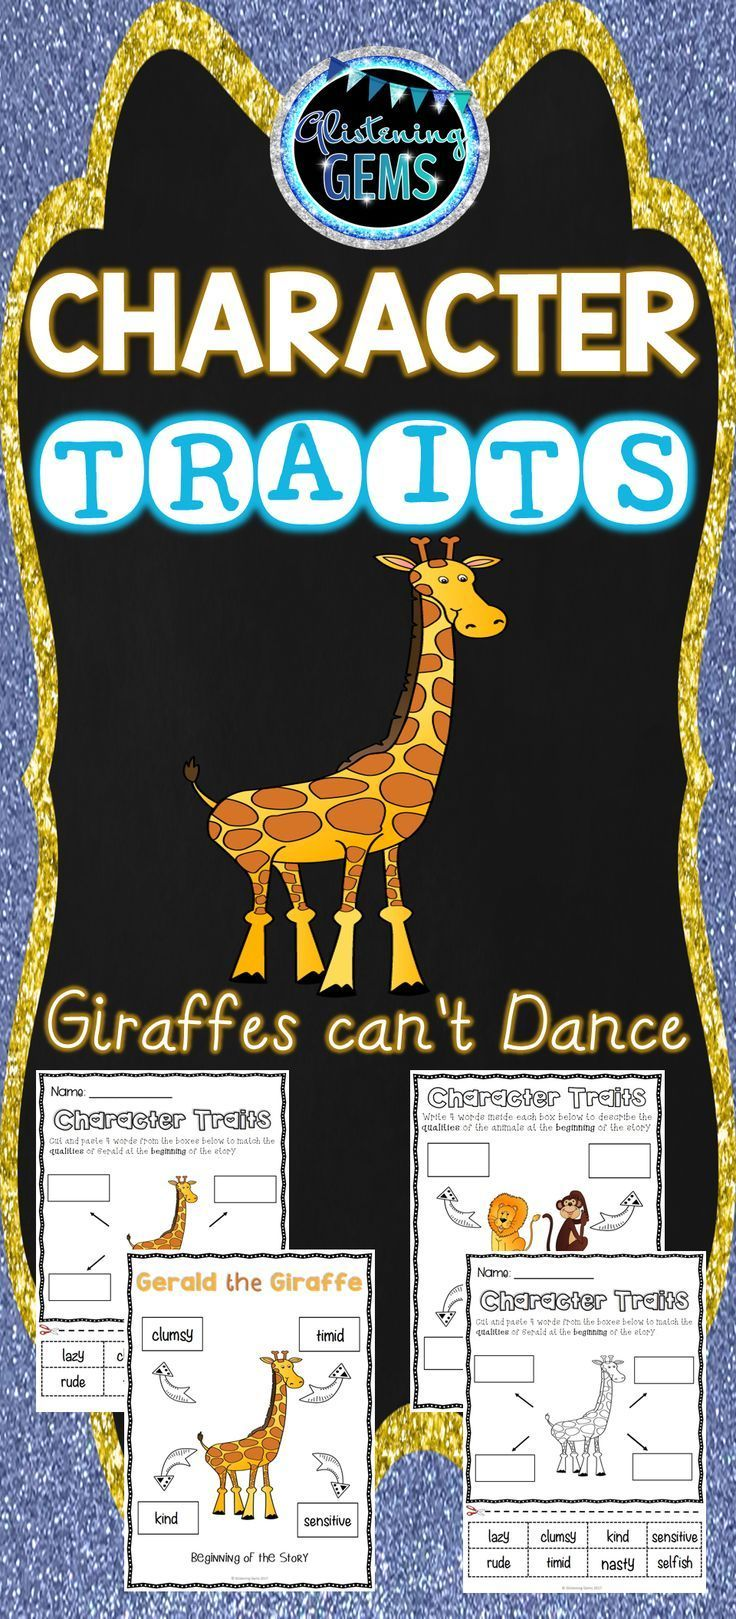 giraffes essay example Giraffes usually weigh about 2,500 lbs giraffes along with their extremely tall bodies have tongues usually fifteen inches long both sexes have two or four short, blunt, skin-covered horns the coat has chestnut brown blotches against a brown background, markings that blend with the many different trees.